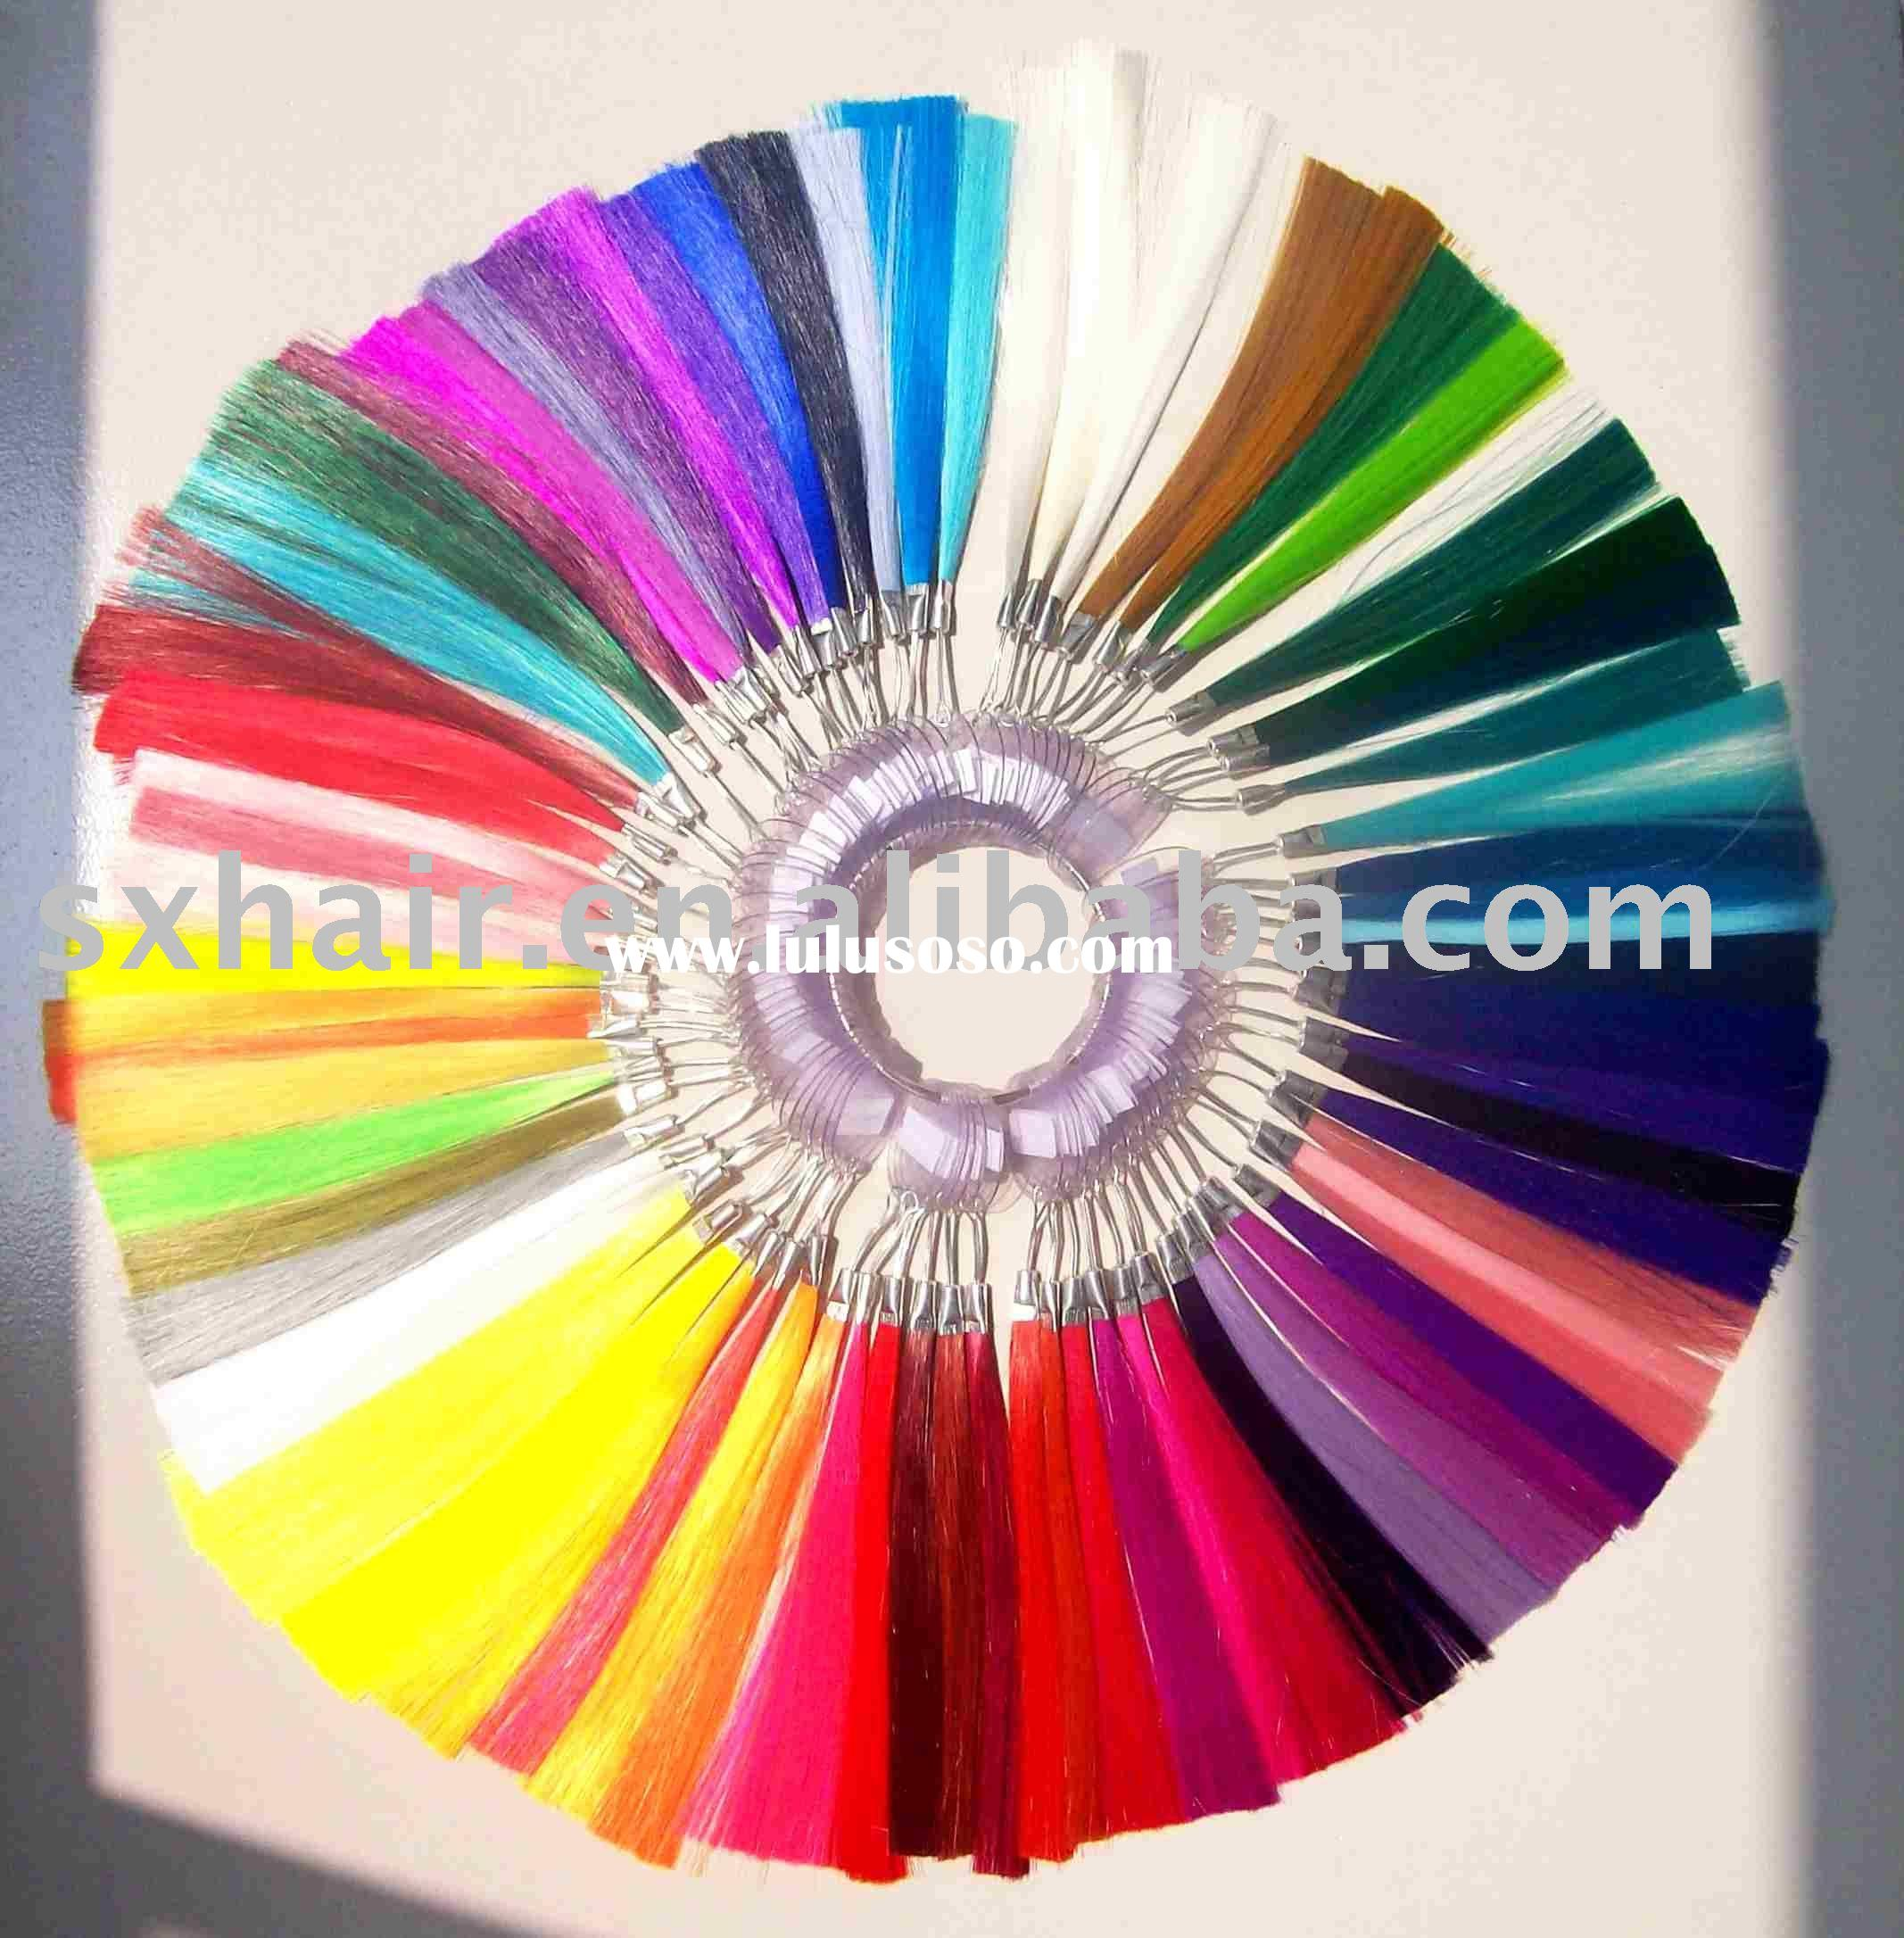 Water Works Hair Color Color Chart Water Works Hair Color Color